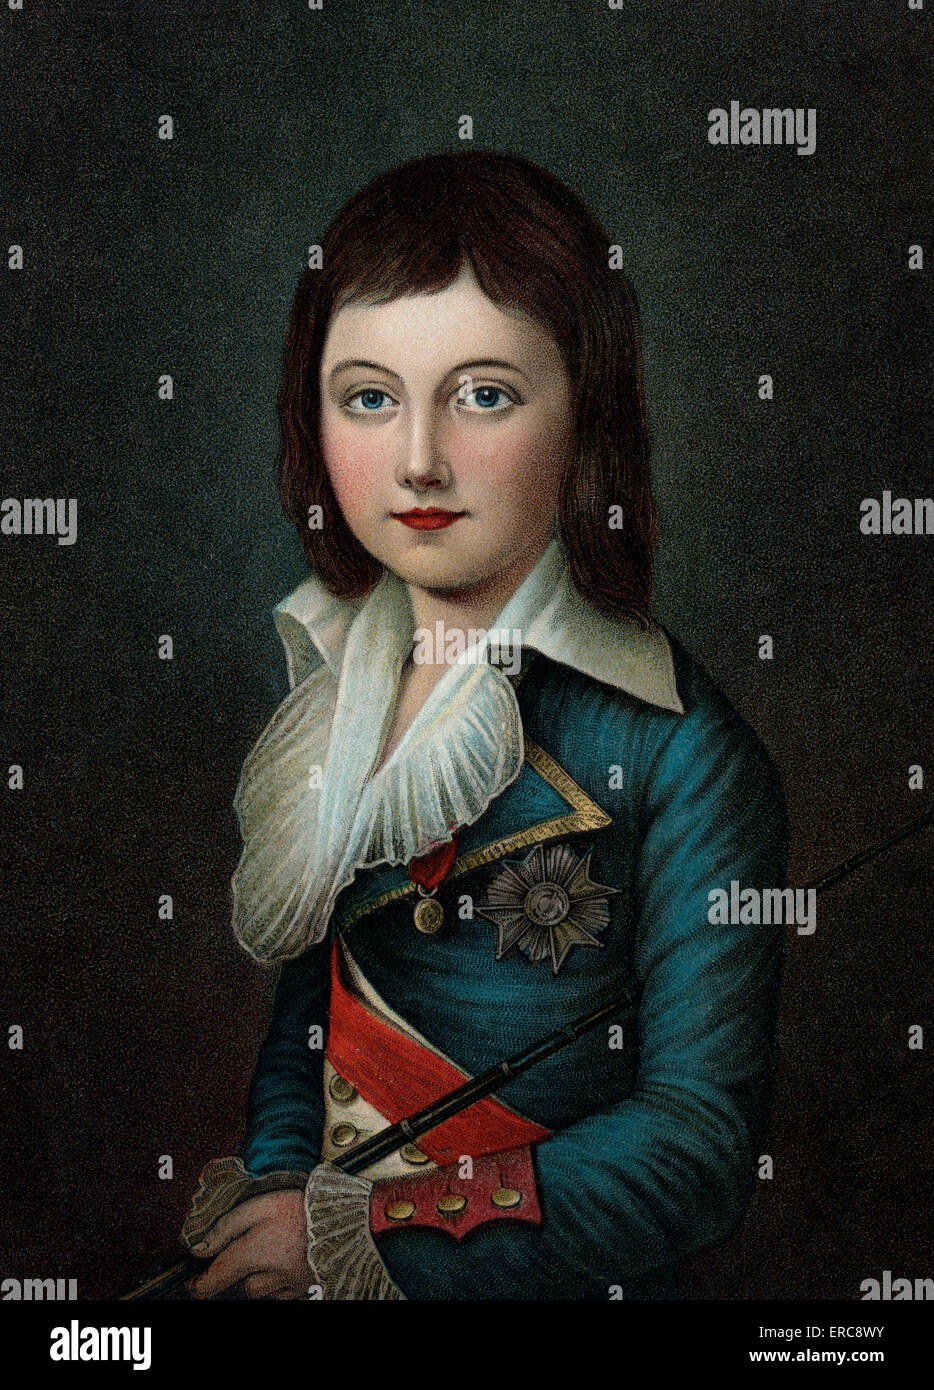 Louis xvii chair - 1792 Portrait Of Louis Xvii Young Boy Looking At Camera Died At Age 10 Son Of